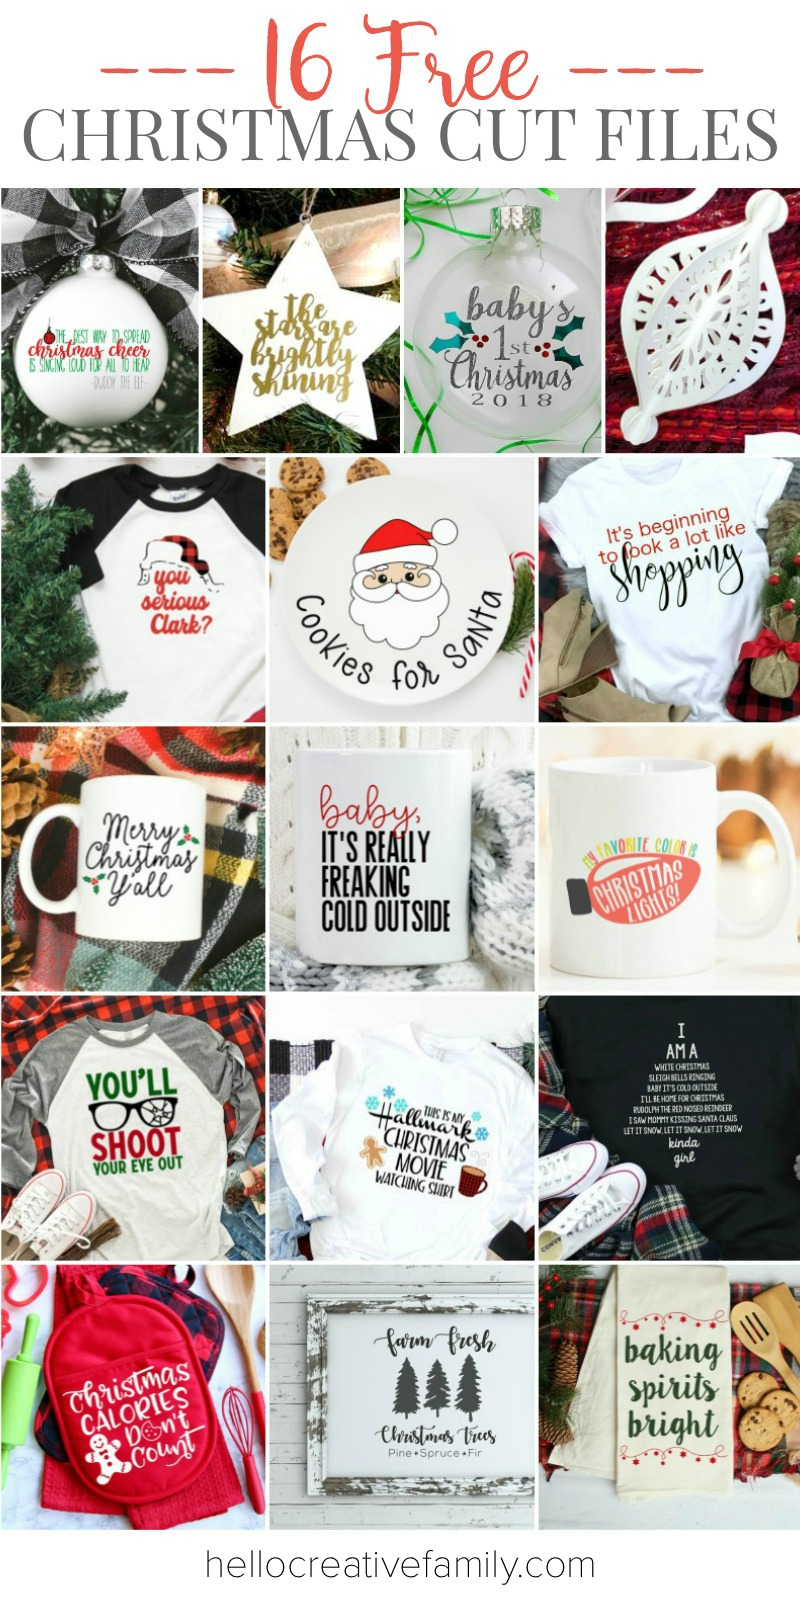 Pull out your Cricut or SIlhouette and celebrate Christmas in style! We are sharing 16 free Christmas SVG Files that are perfect for creating handmade gifts and clothing for the winter holidays! #Cricut #Silhouette #FreeSVG #Christmas #ChristmasSVG